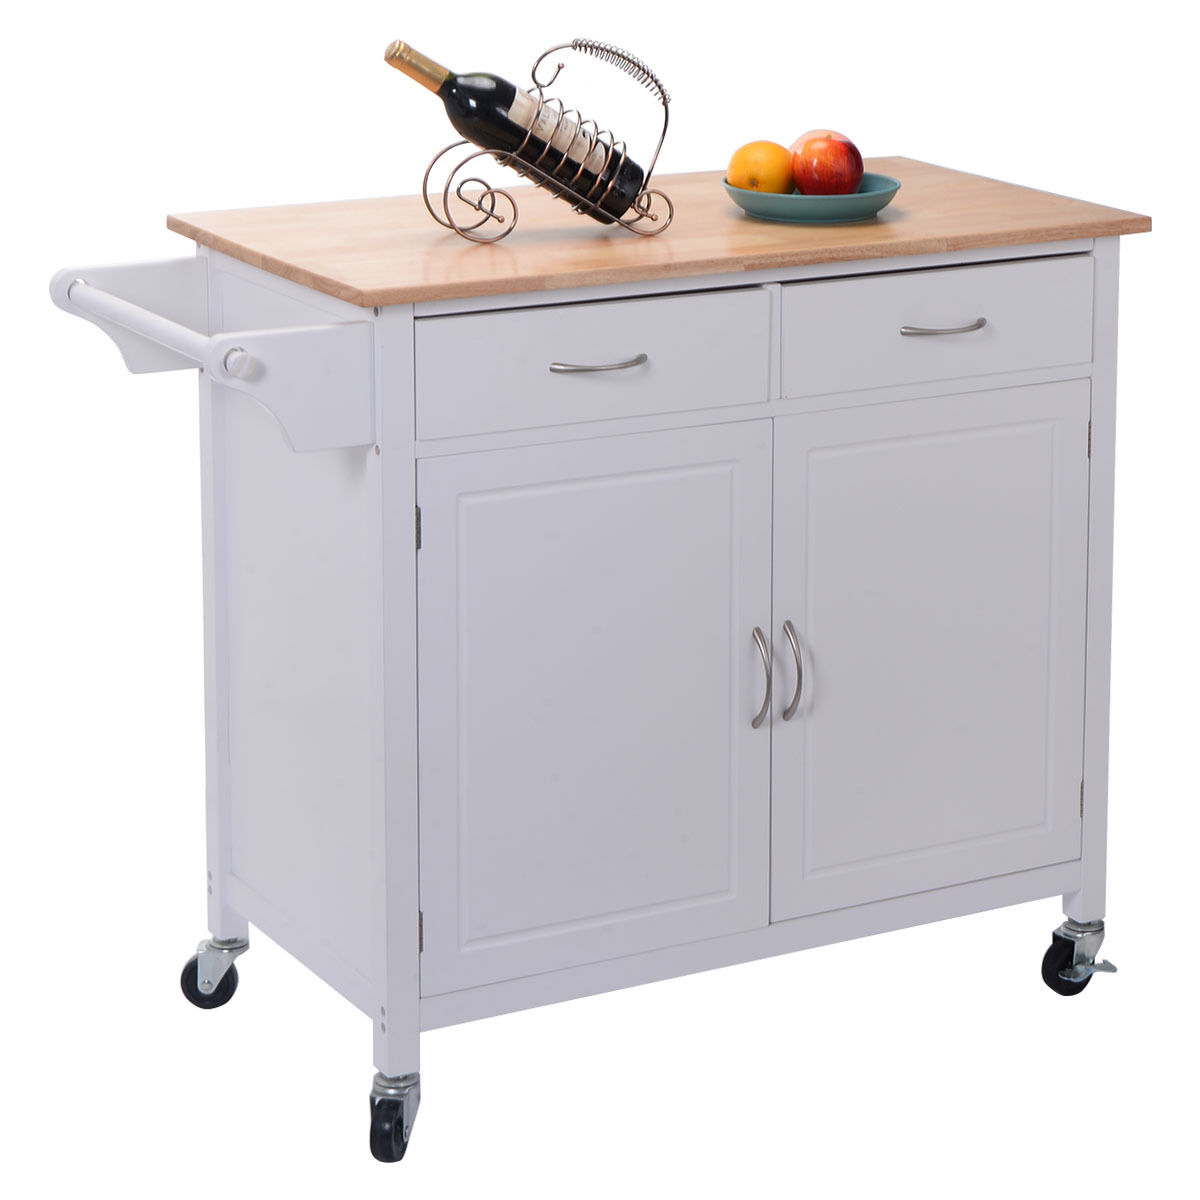 Kitchen Islands & Carts - Walmart.com